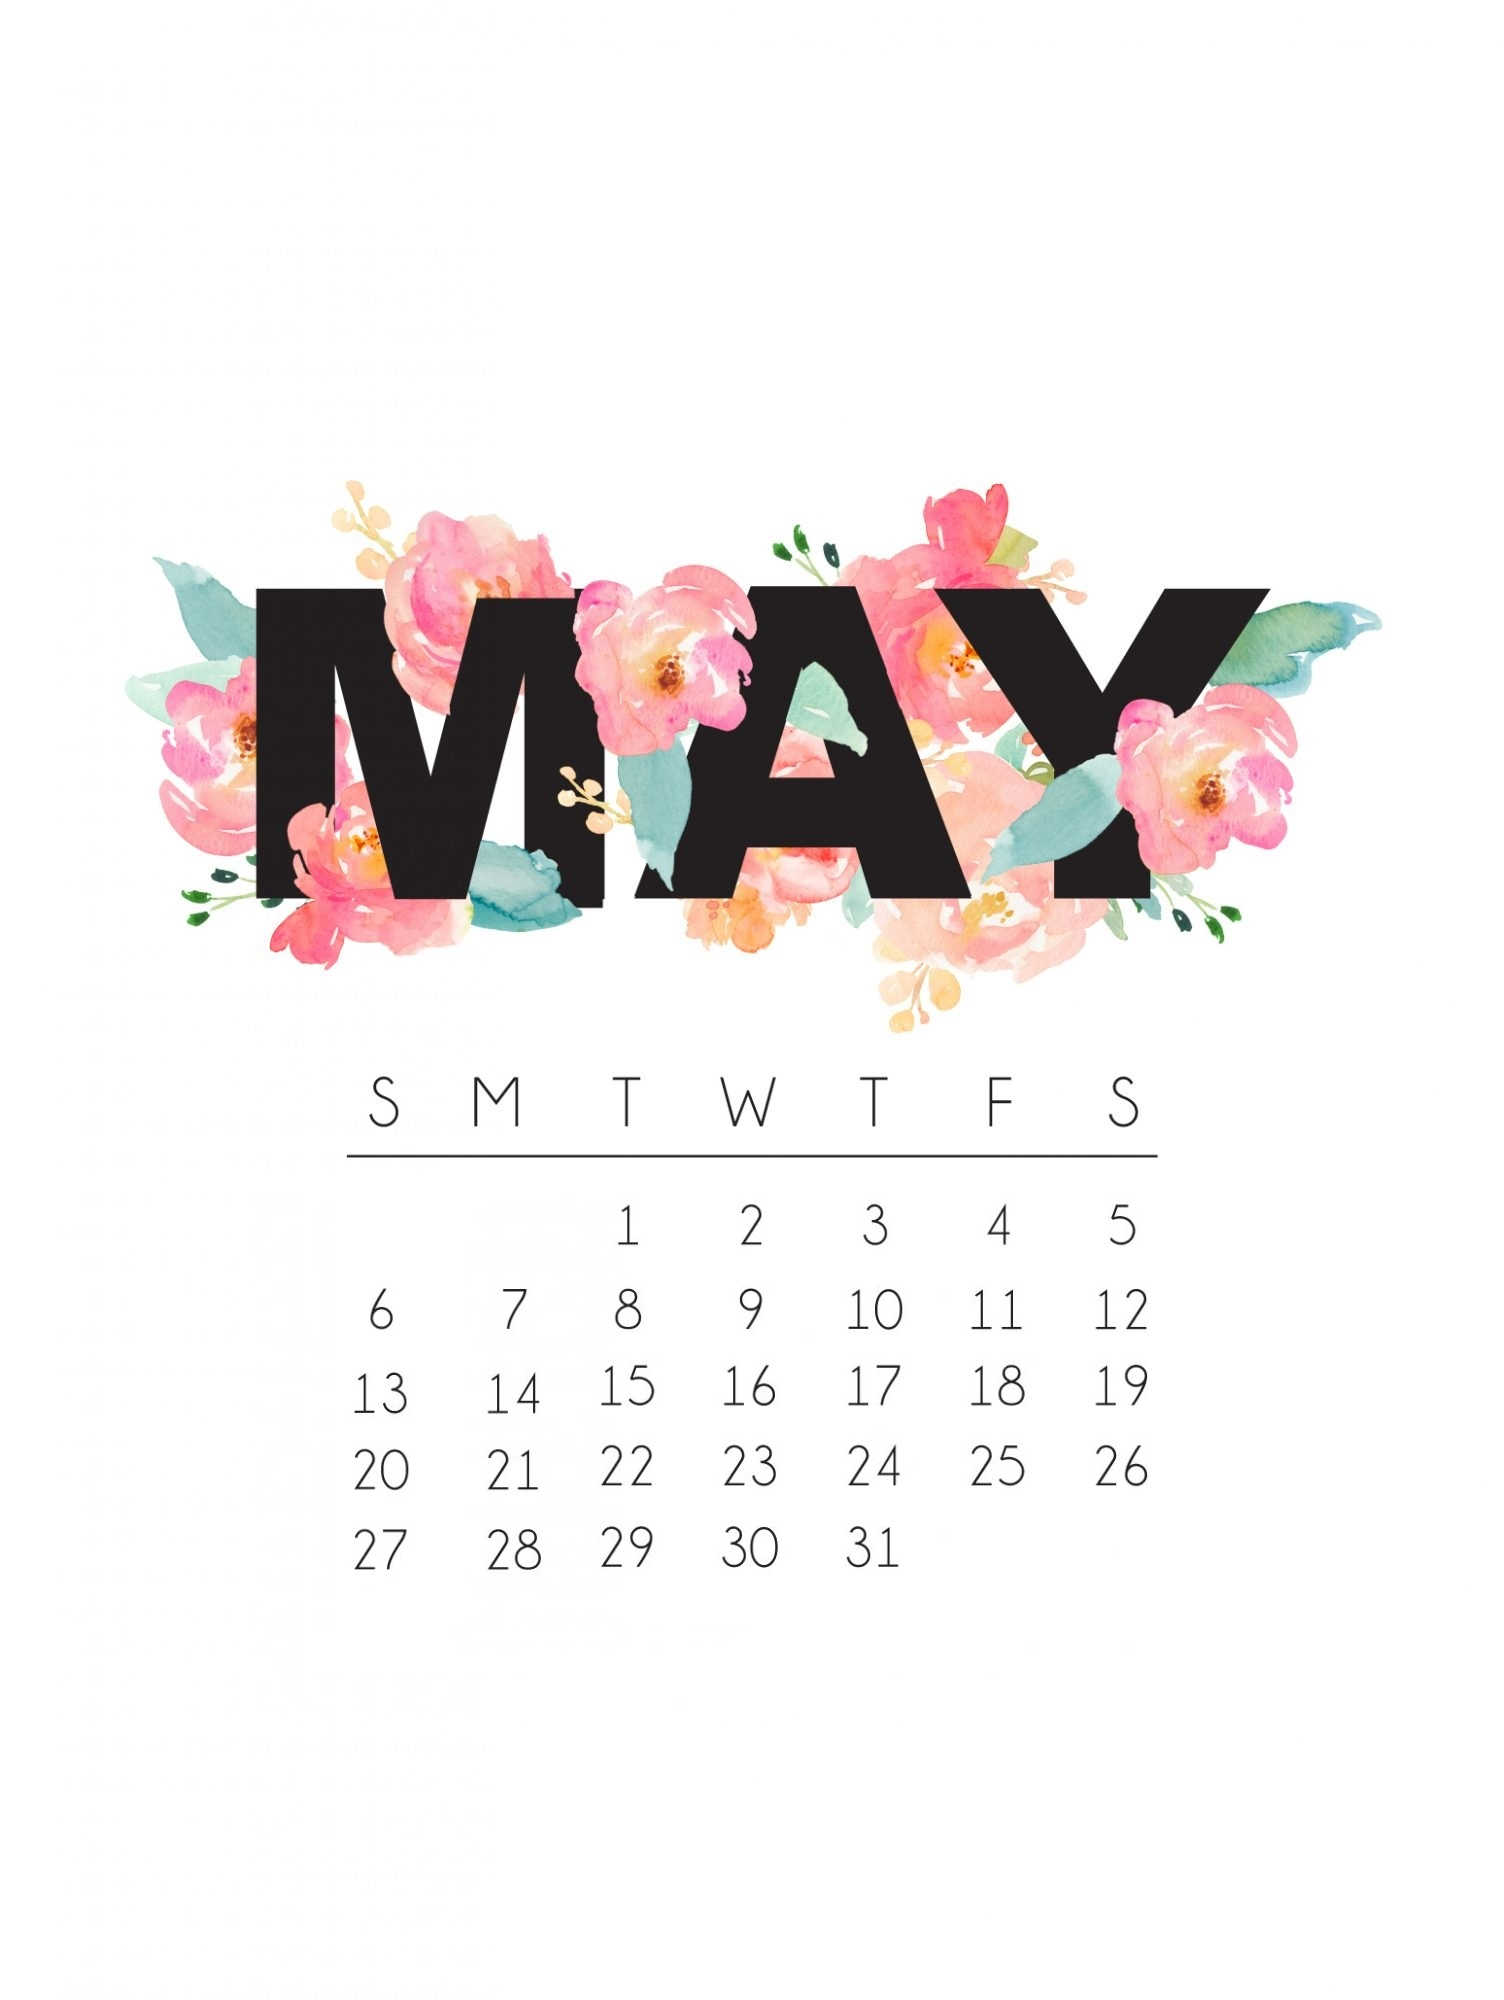 2018 iphone calendar wallpaper calendar 2018::May 2019 iPhone Calendar